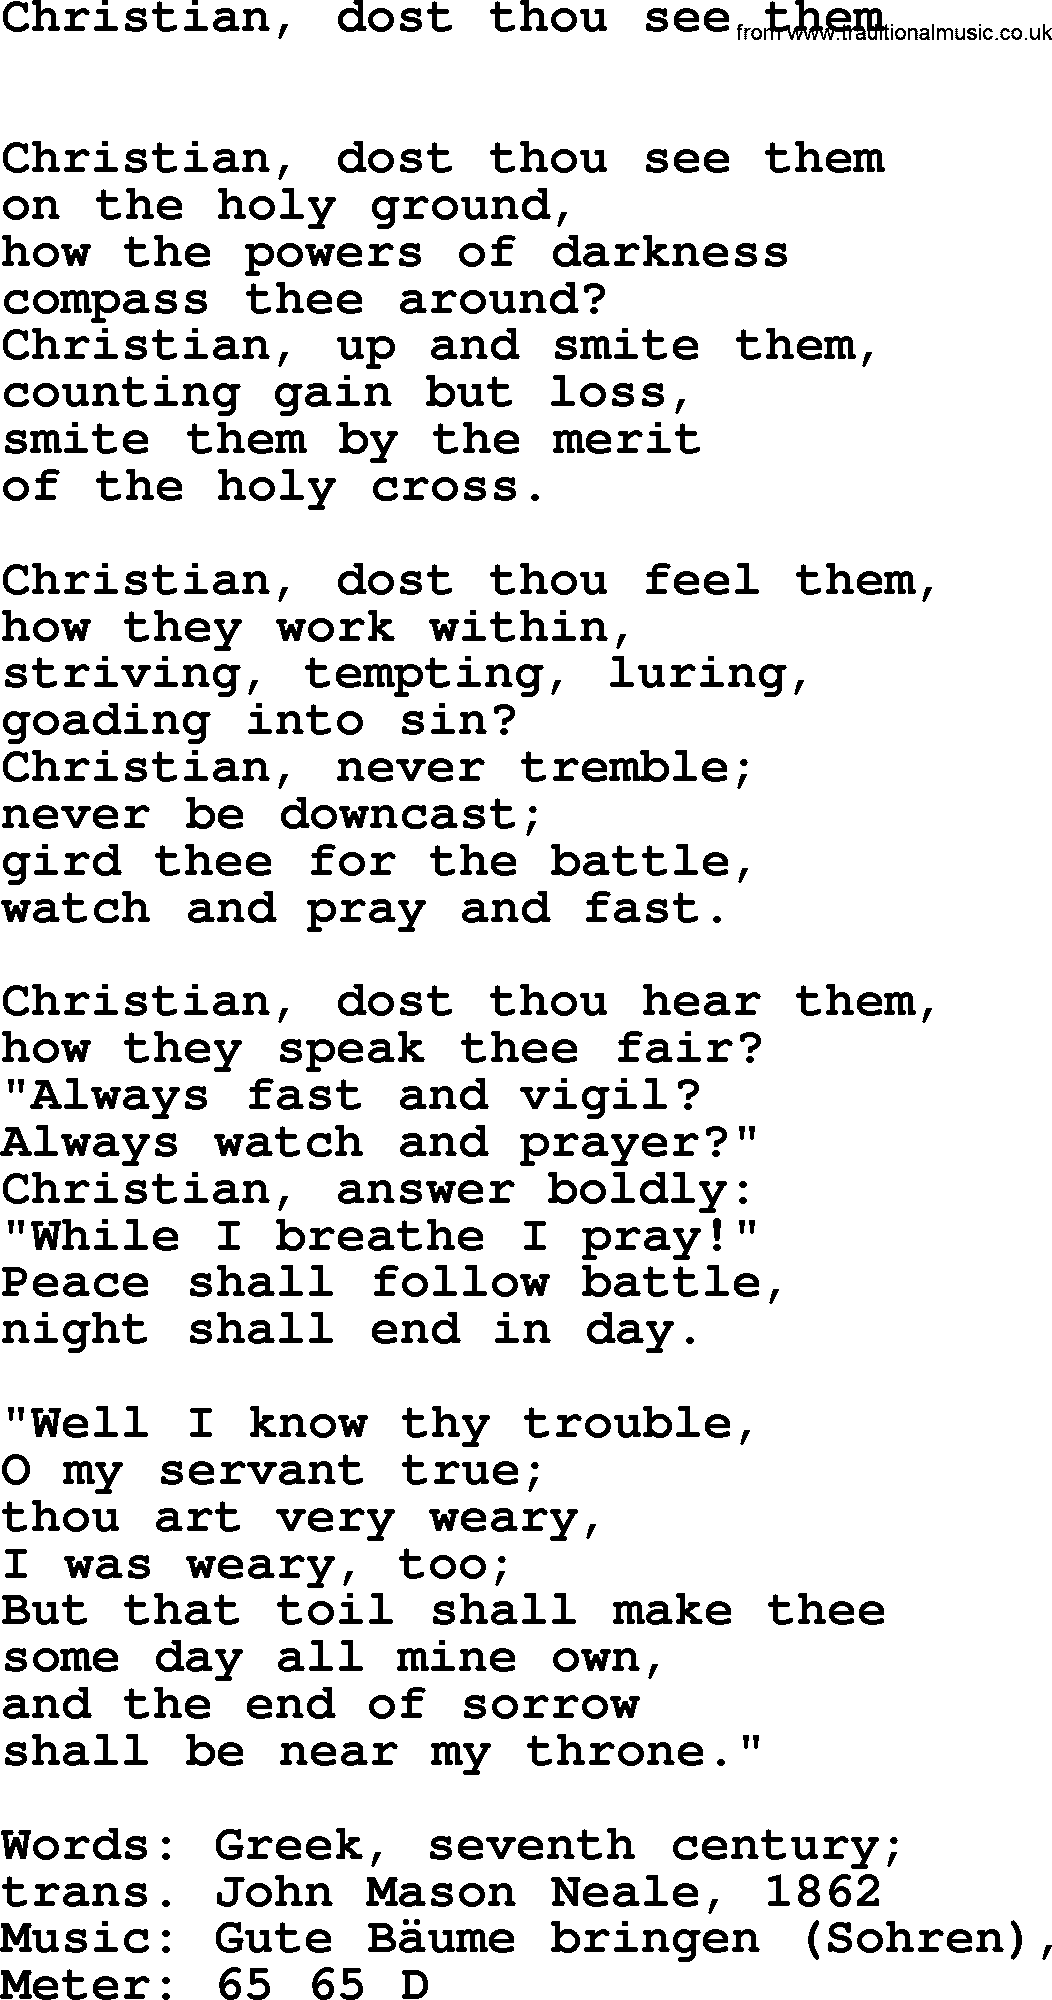 Book of Common Praise Song: Christian, Dost Thou See Them, lyrics